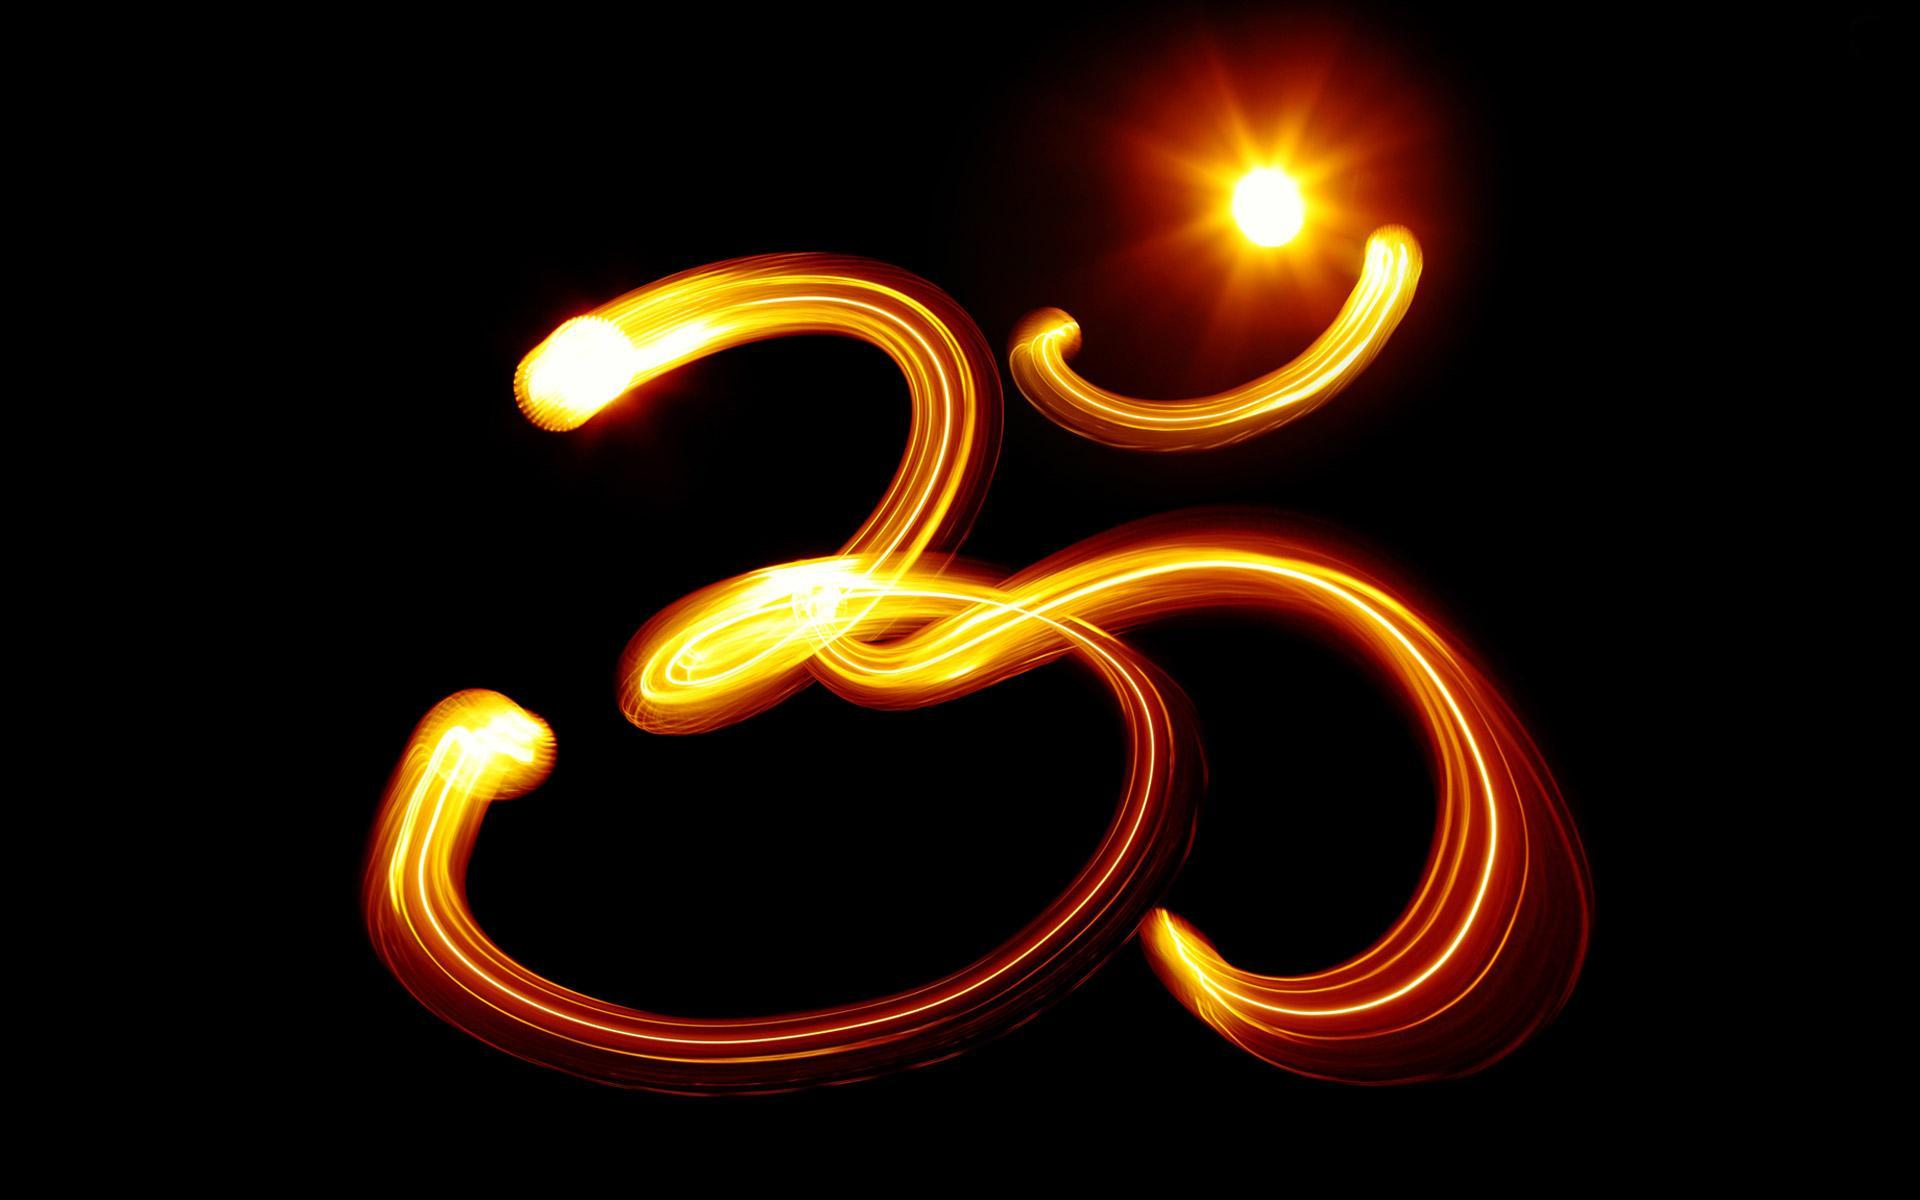 Om Hd Live Wallpapers For Android Apk Download